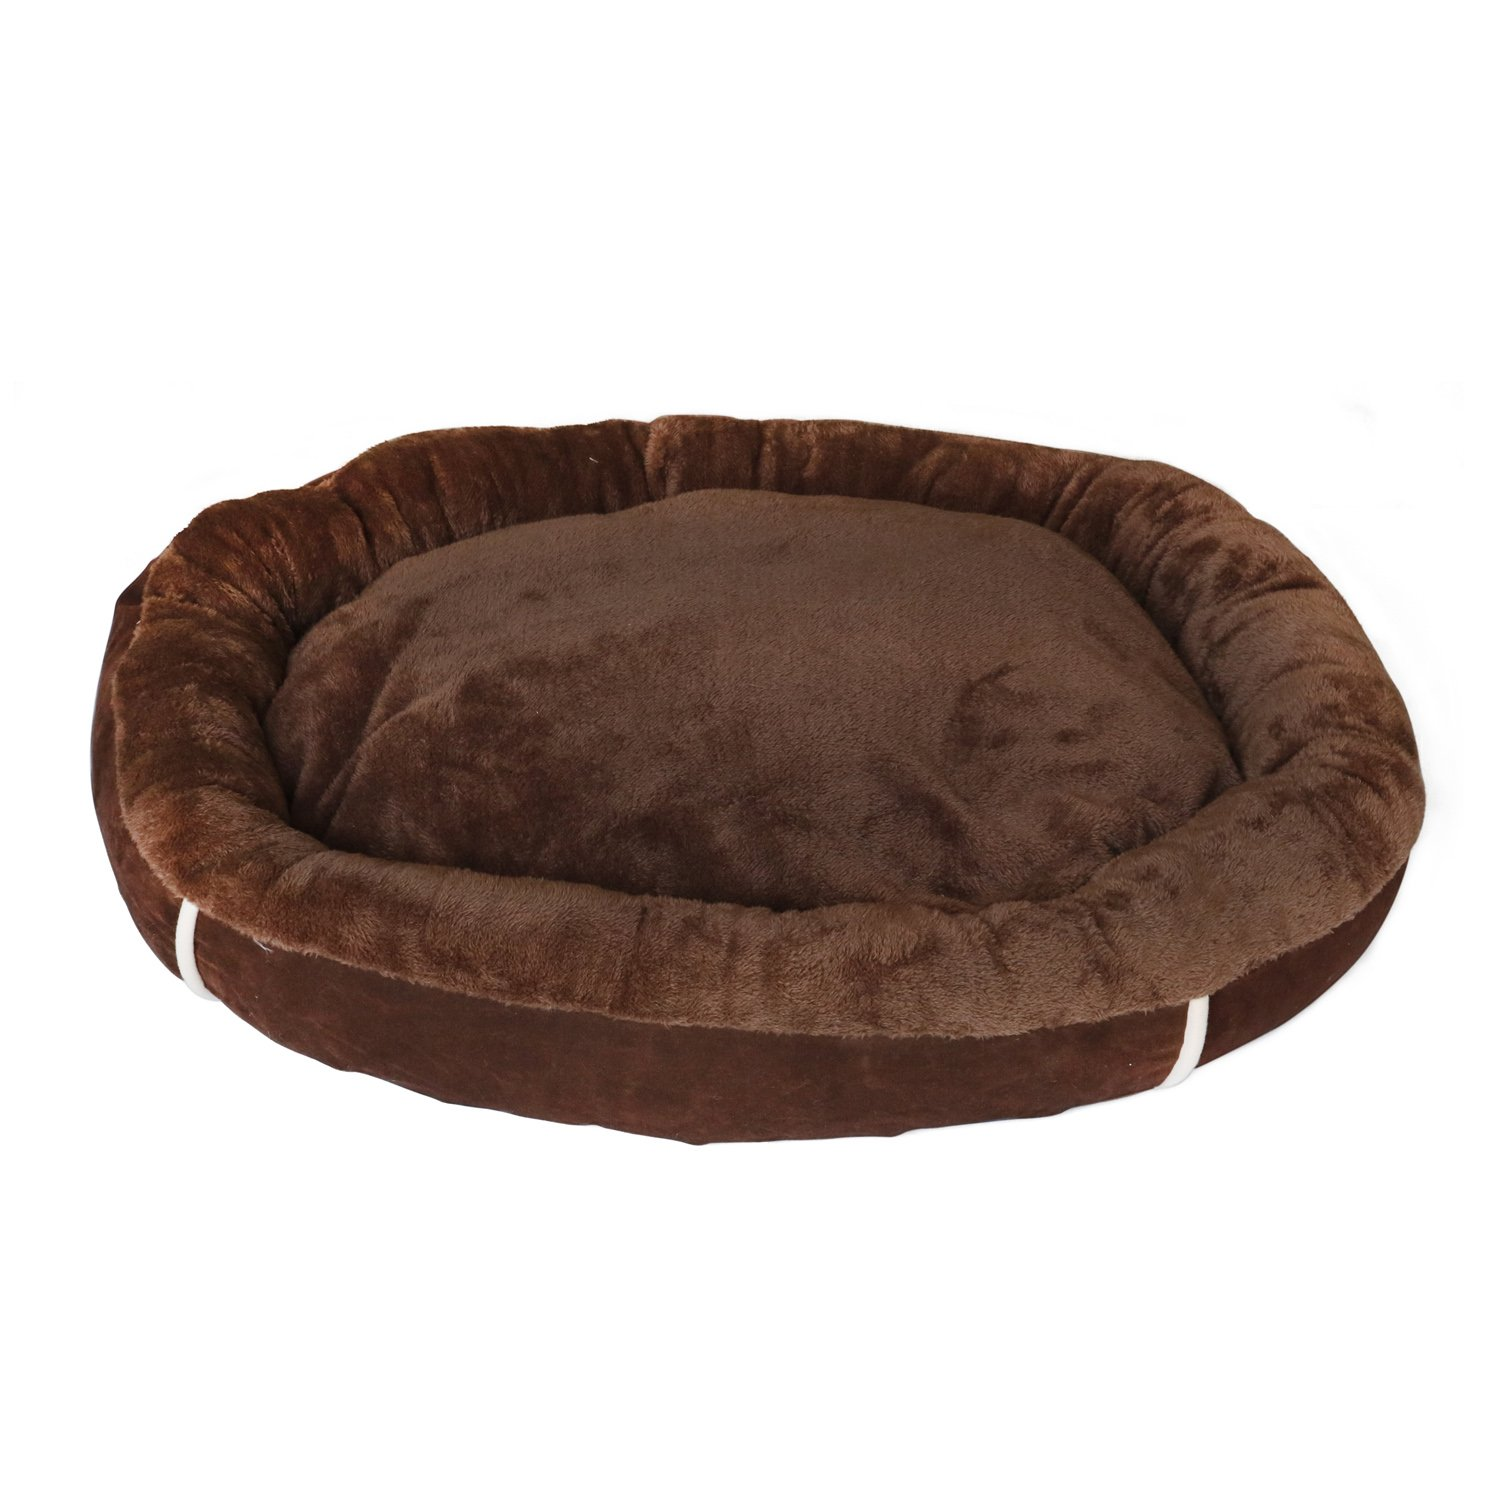 HappyCare Textiles 047393528995 Oval Pet Bed with Removable Insert, Brown/Coffee, 33/28''